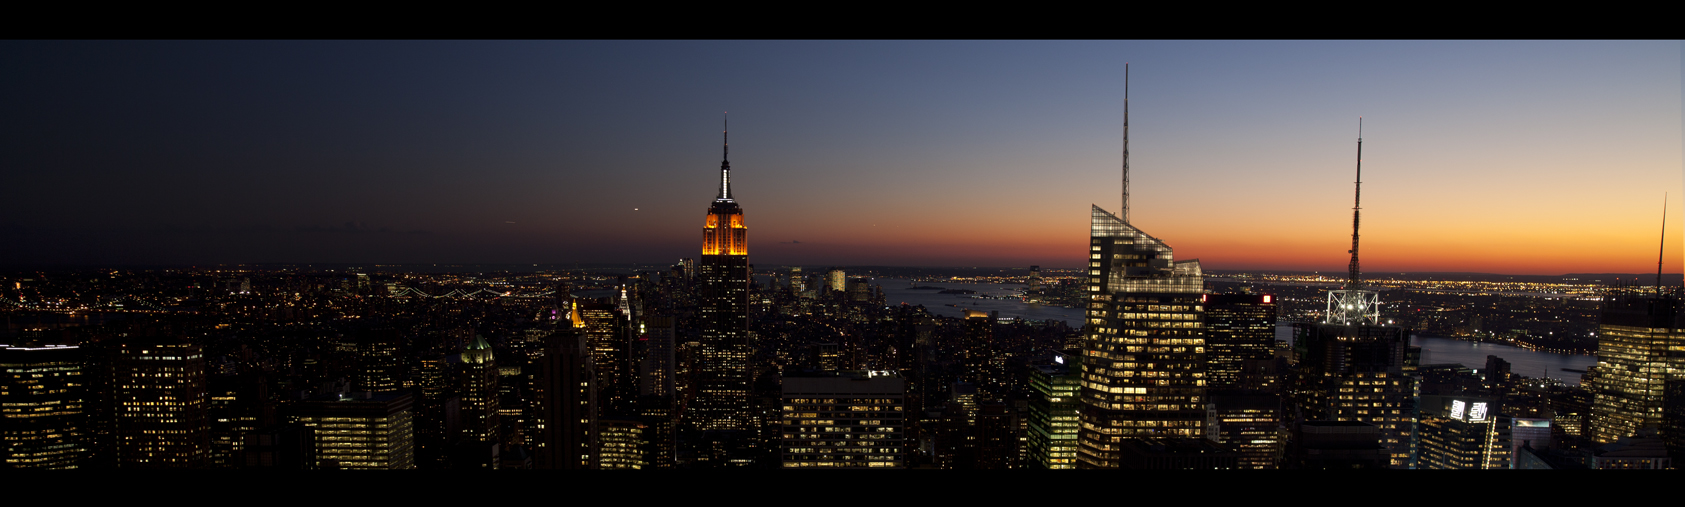 NY timelapse project by leventep